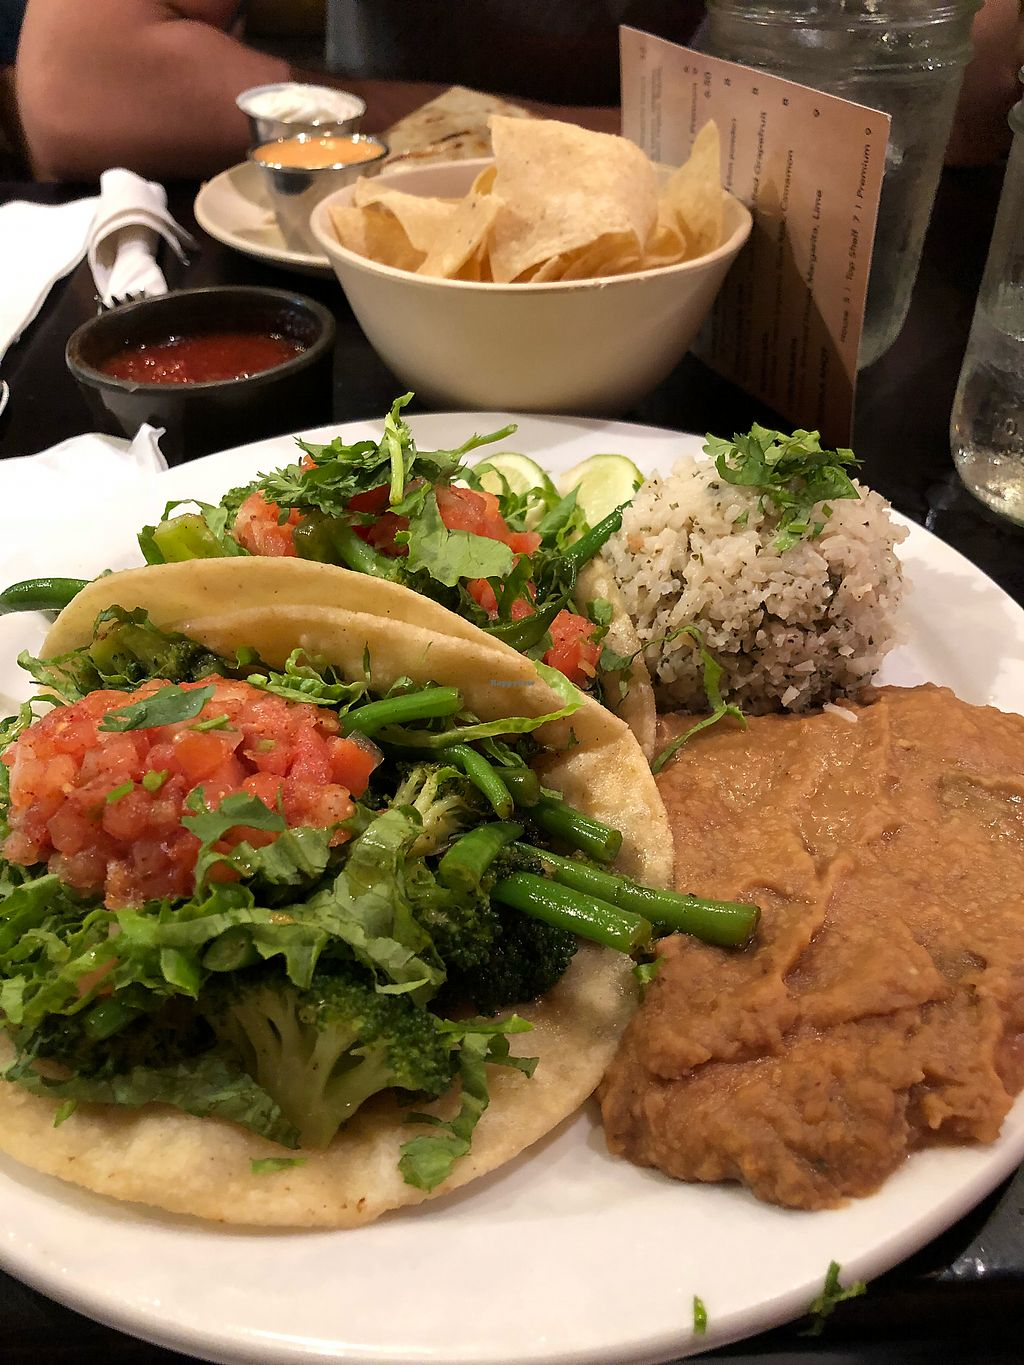 """Photo of Verde Restaurant  by <a href=""""/members/profile/CarleeBusby"""">CarleeBusby</a> <br/>Vegan tacos <br/> March 30, 2018  - <a href='/contact/abuse/image/27306/378186'>Report</a>"""